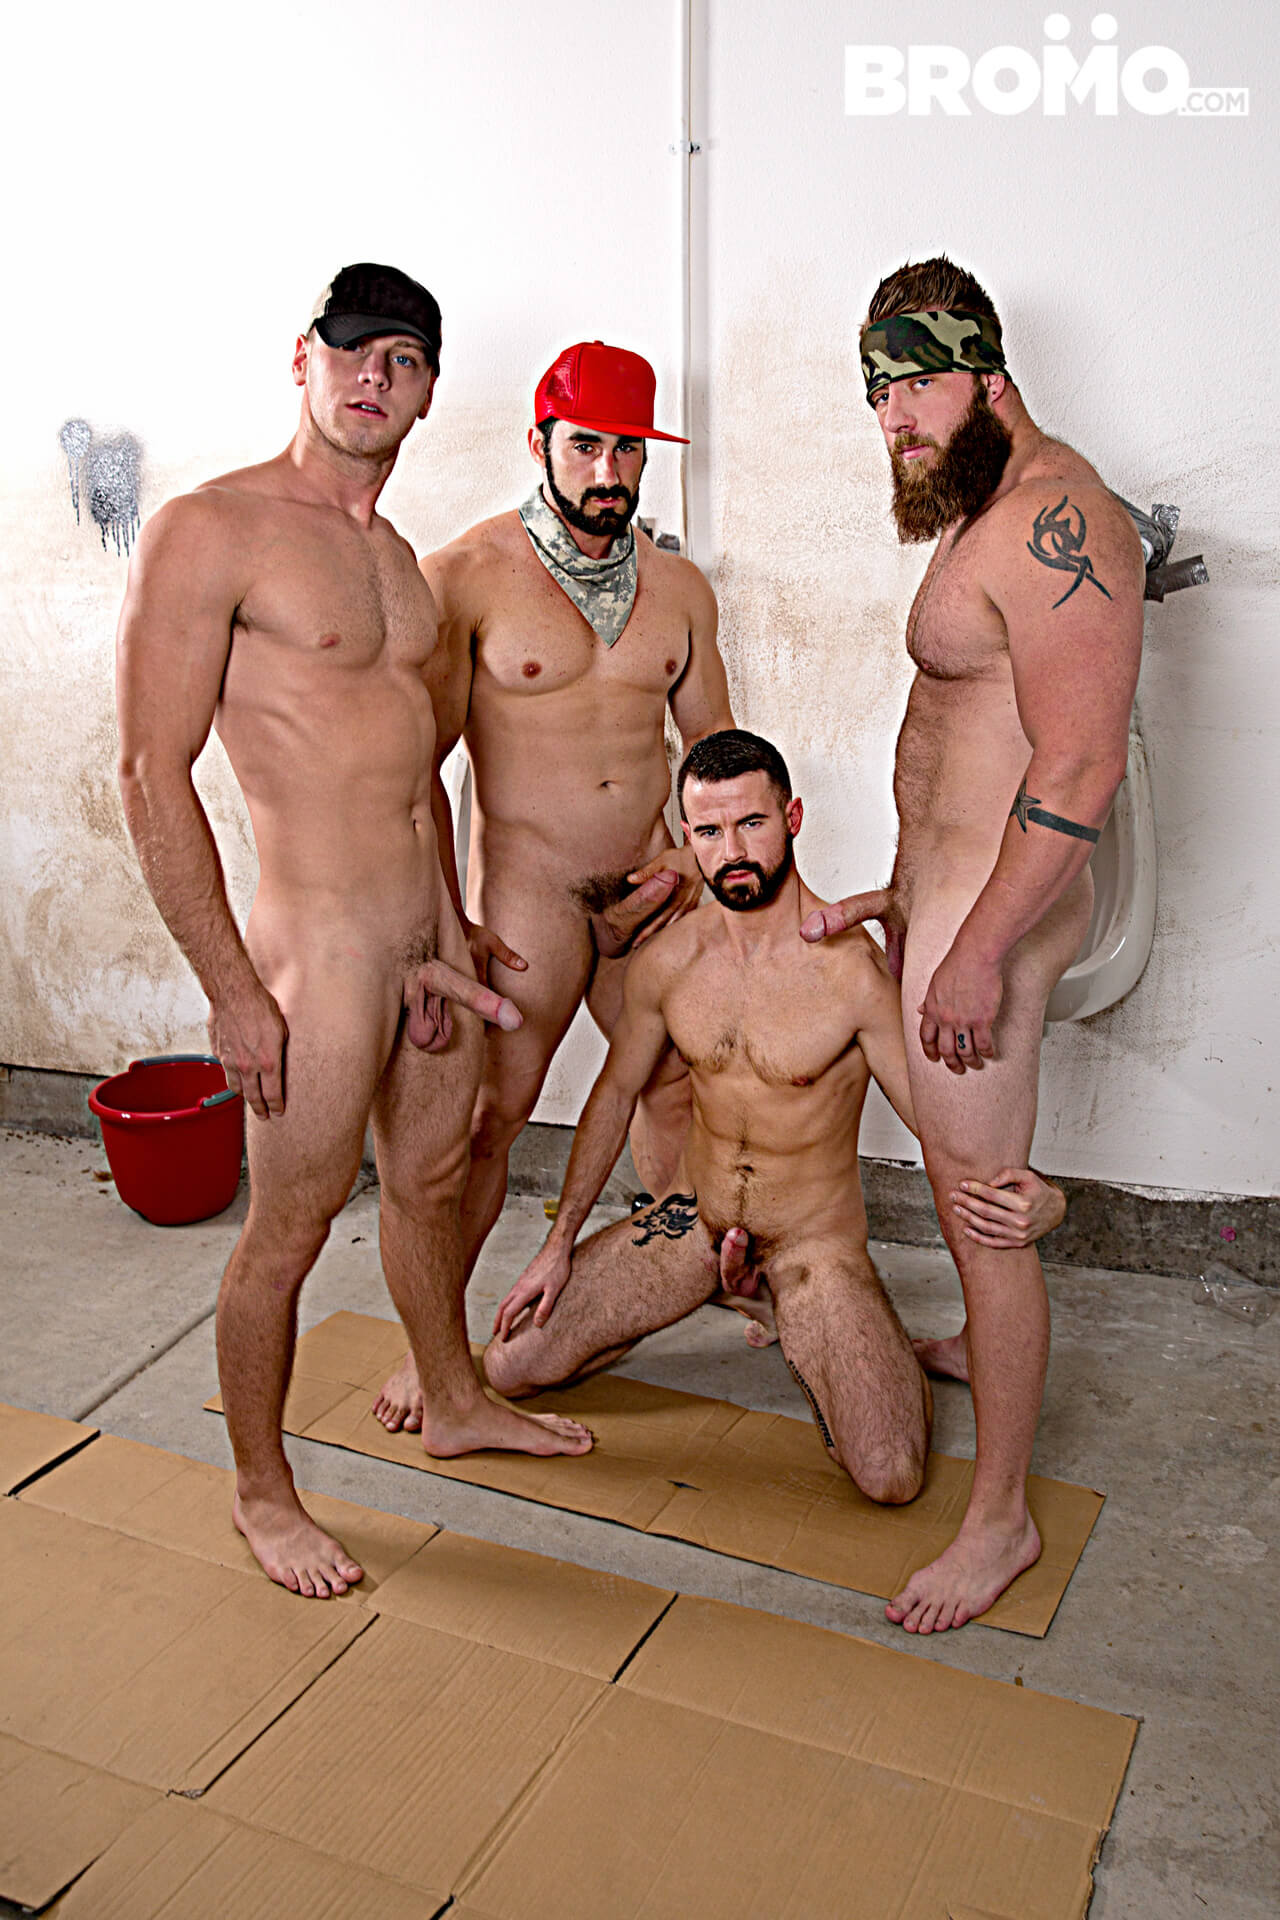 bromo the rednecks part 4 jaxton wheeler brandon evans aaron bruiser brendan patrick gay porn blog image 12